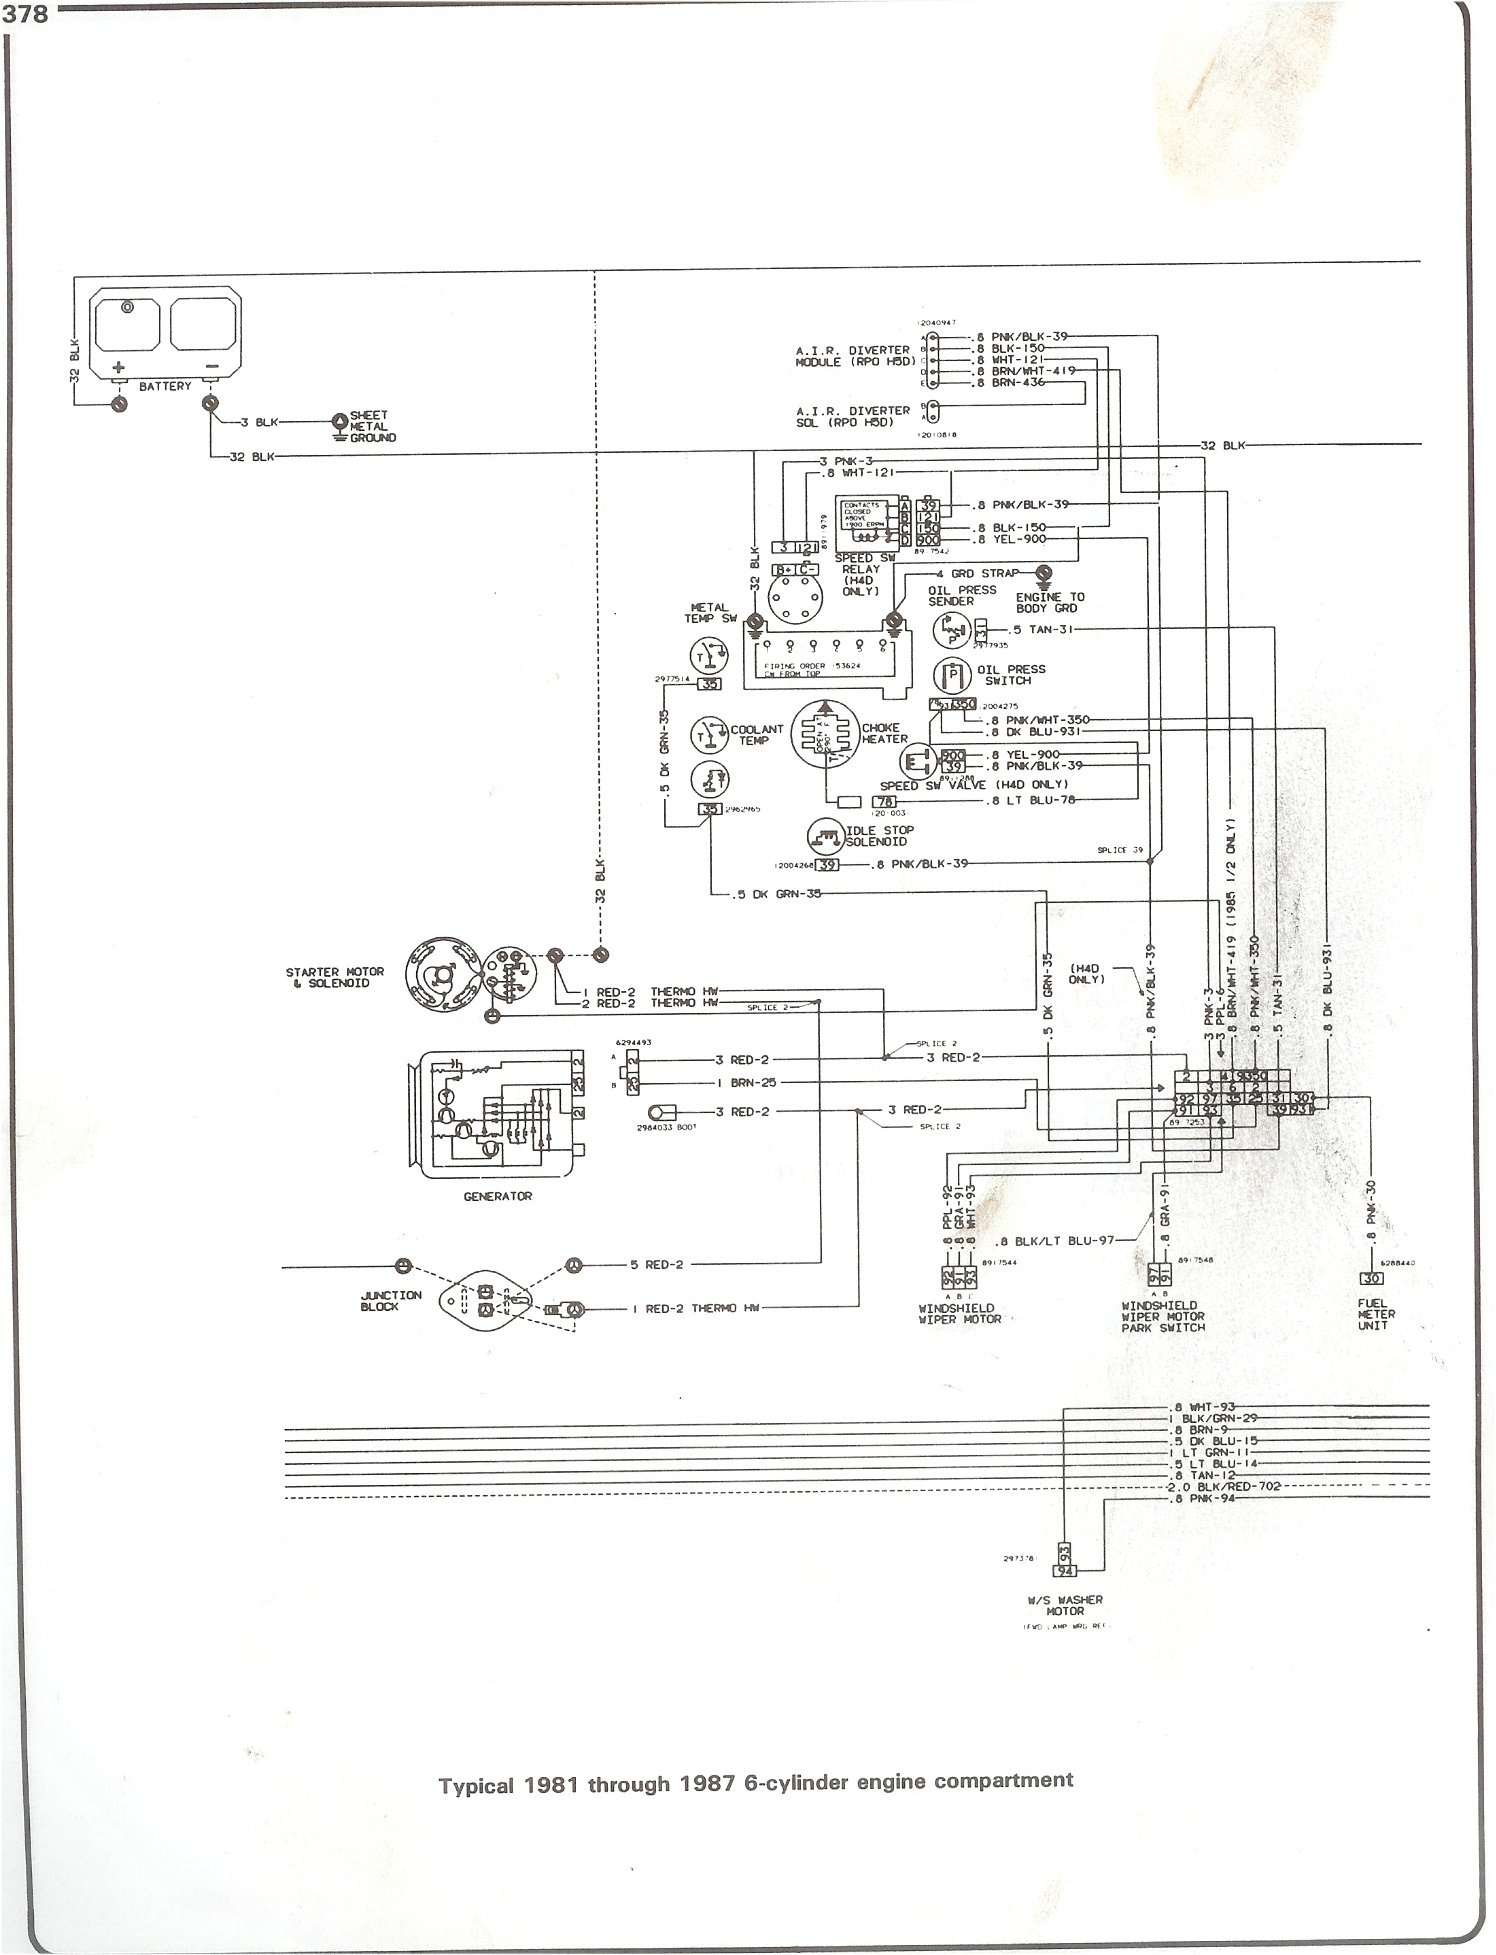 WRG-2570] Universal Ignition Wiring Diagram on msd soft touch rev control wiring diagram, chevy ignition switch repair, chevy speaker wiring diagram, ignition switch schematic diagram, gm ignition wiring diagram, chevy cobalt stereo wiring diagram, chevy wiring diagrams automotive, chevy a/c compressor wiring diagram, chevy distributor wiring diagram, 1956 chevy ignition switch diagram, 2002 chevy avalanche wiring diagram, 1957 chevy wiring diagram, 1965 chevy ignition switch diagram, mallory ignition wiring diagram, chevy truck wiring diagram, chevy steering column wiring, tachometer wiring diagram, chevy starter wiring diagram, 1994 chevy s10 fuse box diagram, 1972 chevy ignition wiring diagram,